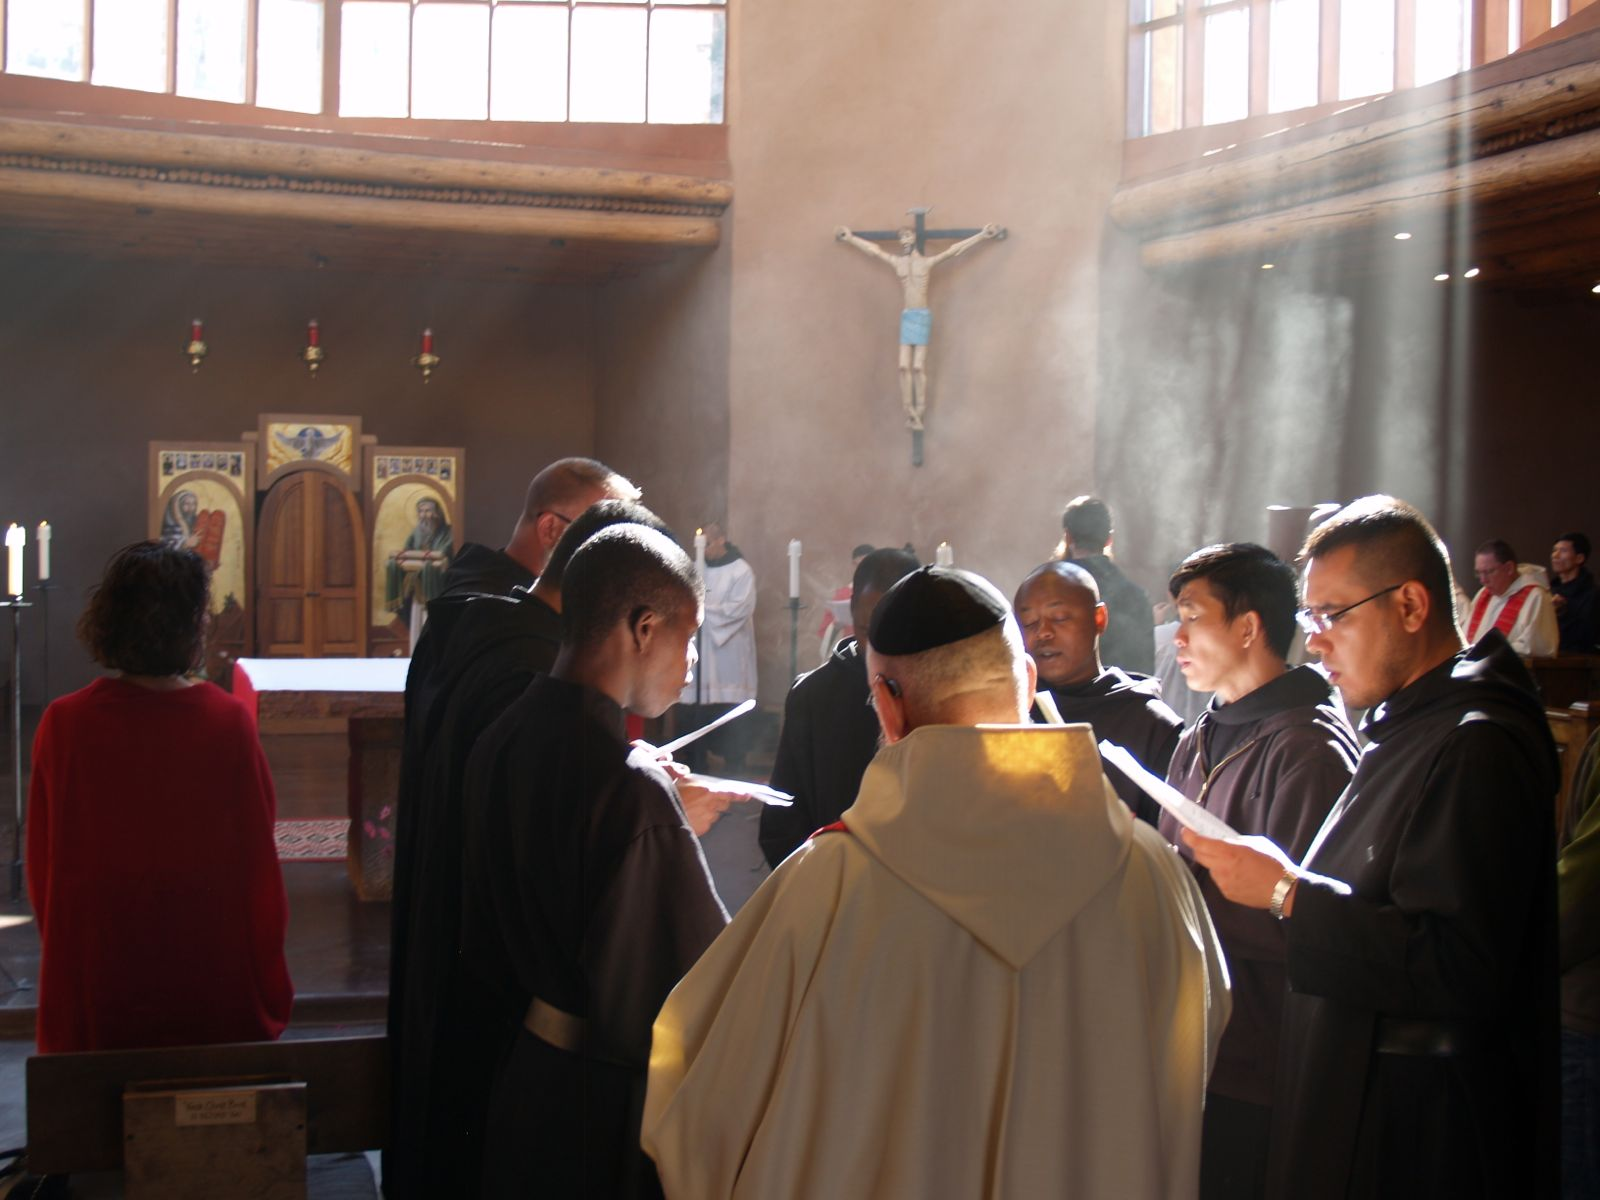 Abbot leads the Schola during Holy Mass